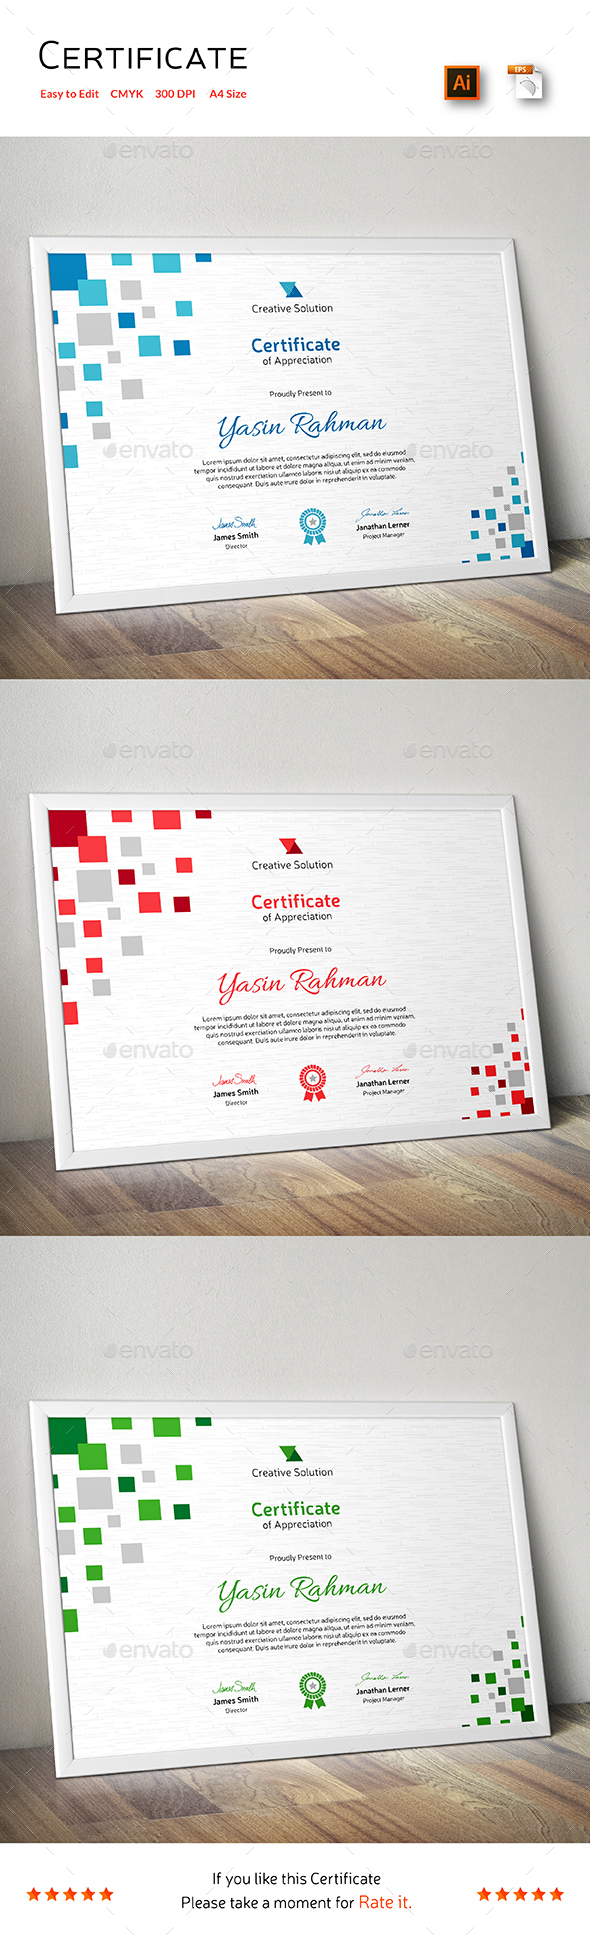 pin by best graphic design on certificate templates